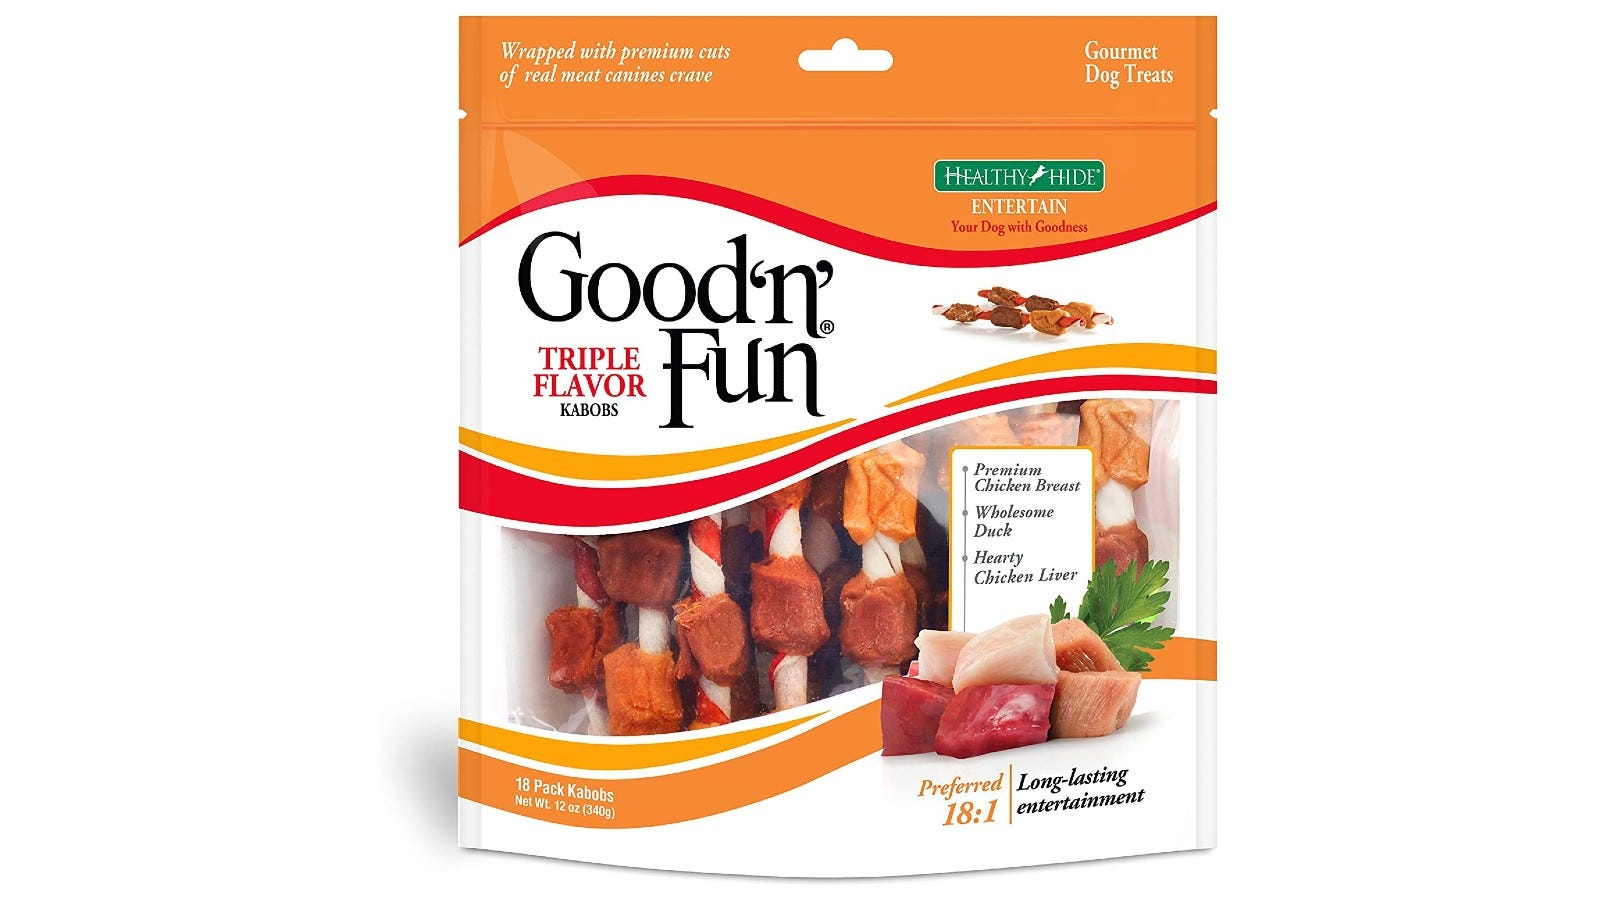 a package of Good'n'Fun dog treat kabobs